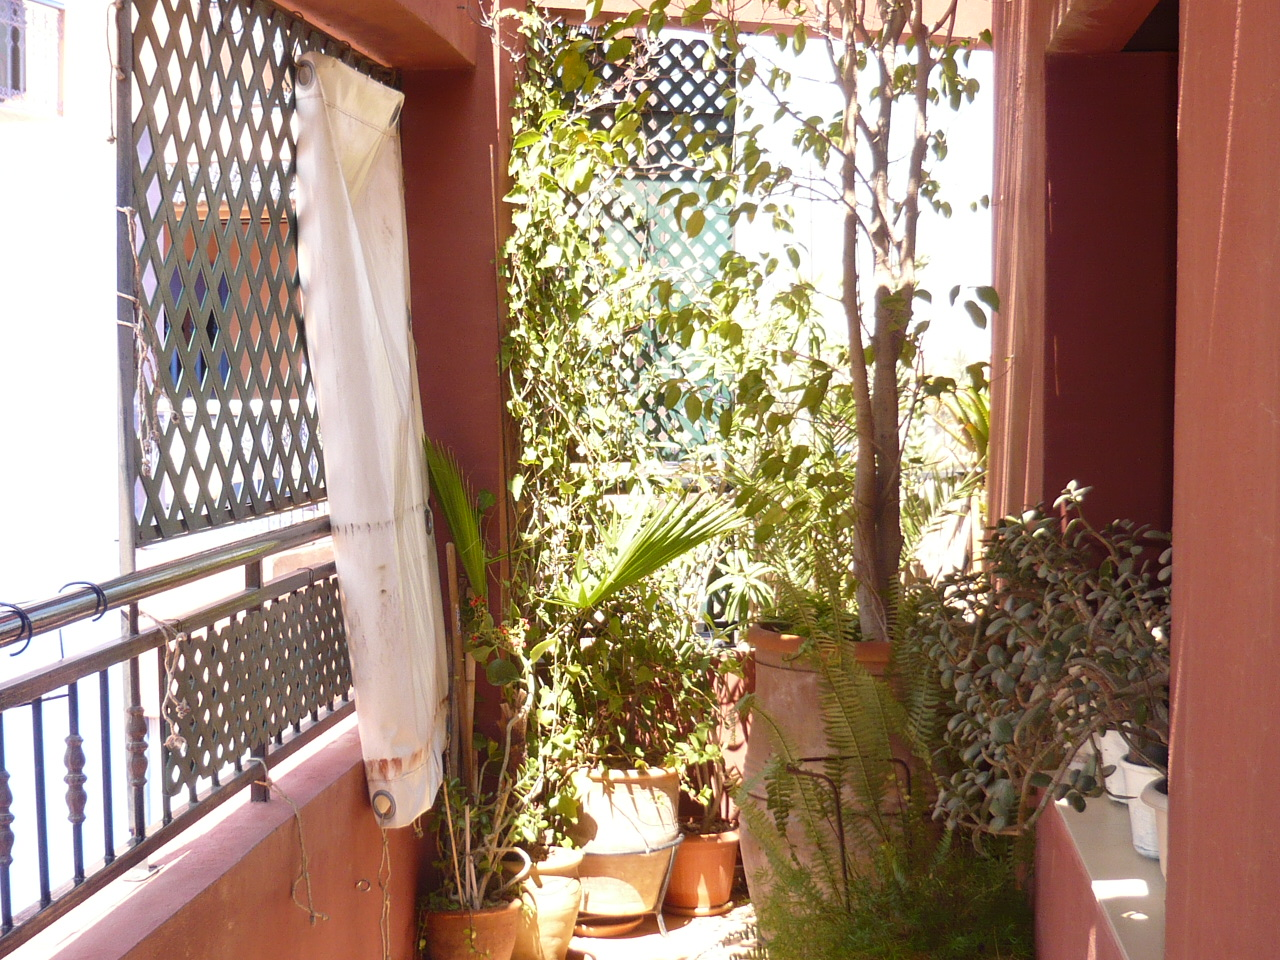 Image appartement en vente Marrakech 8